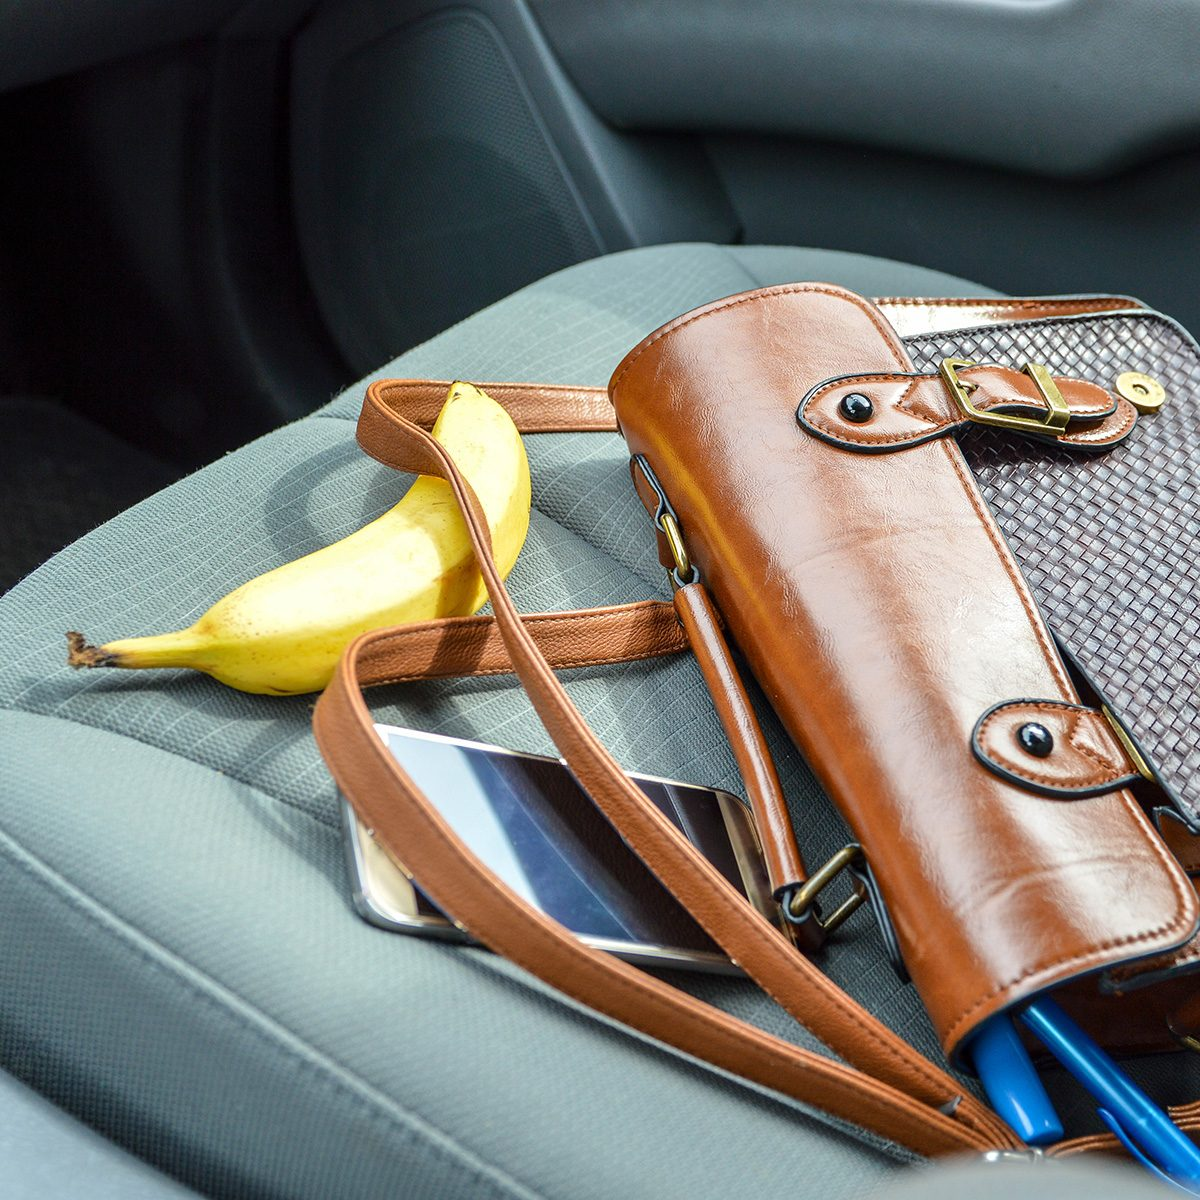 This is an image of a brown purse on the passenger seat of a car with contents spilling out. There is a pen, makeup item, phone and banana laid out around the purse. The car interior is grey.